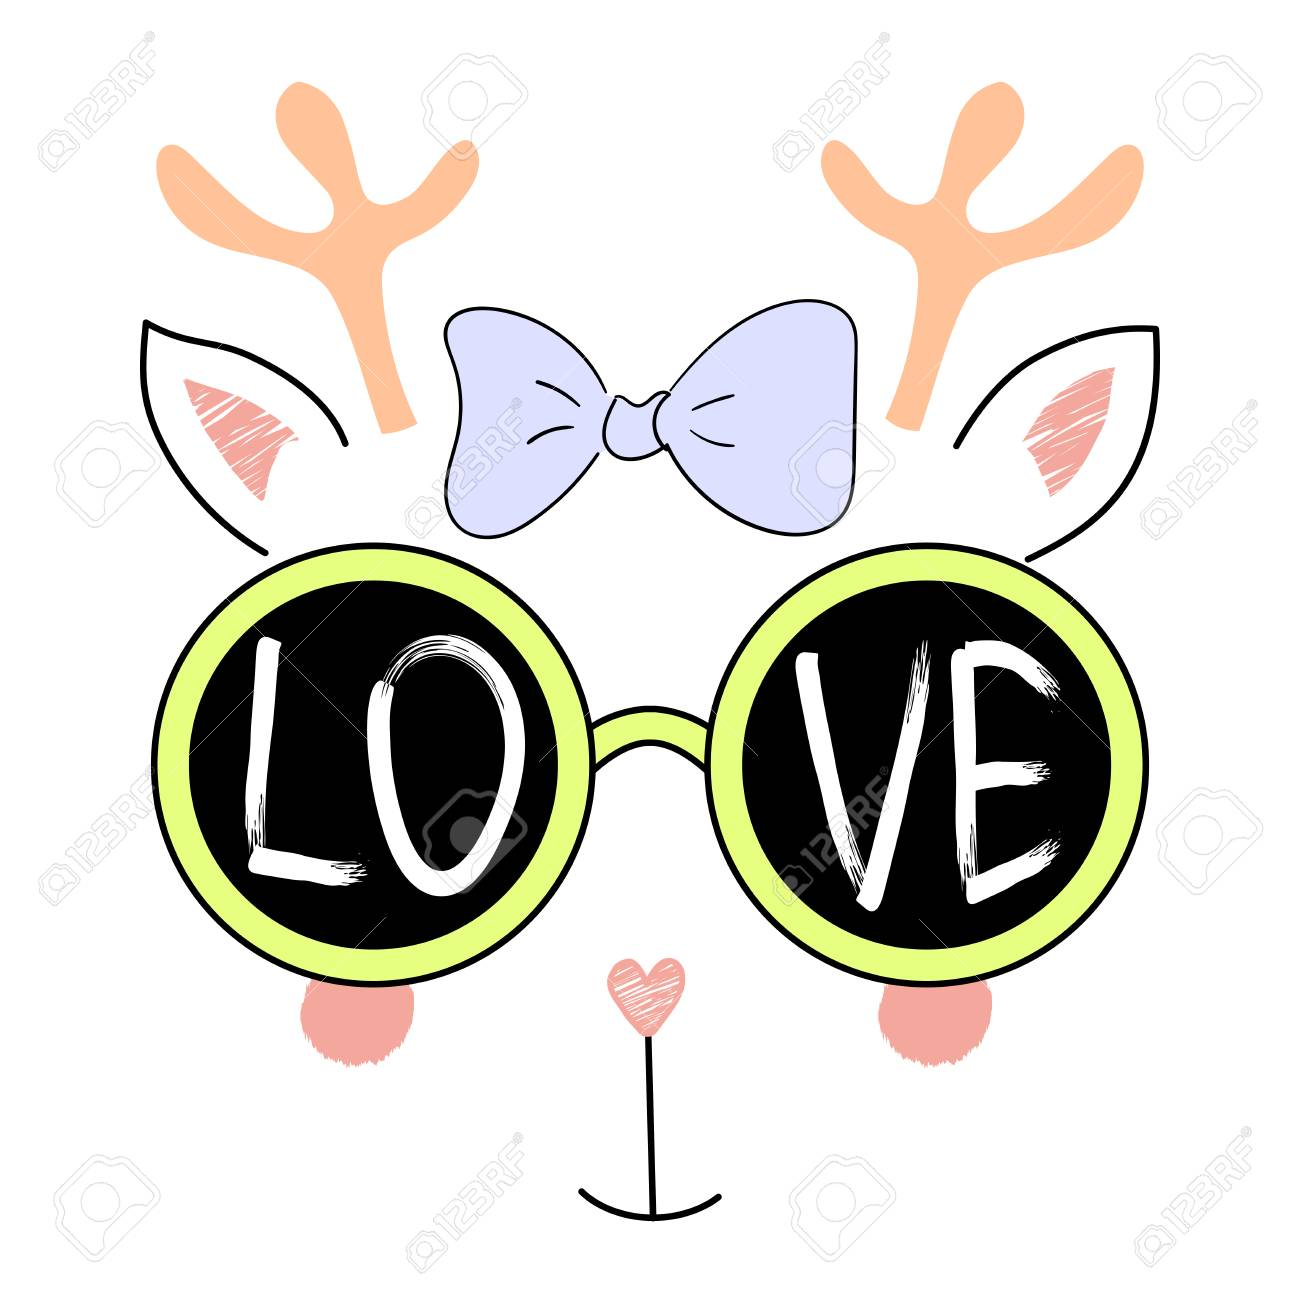 799ada9e593 Hand drawn vector illustration of a funny reindeer face in sunglasses